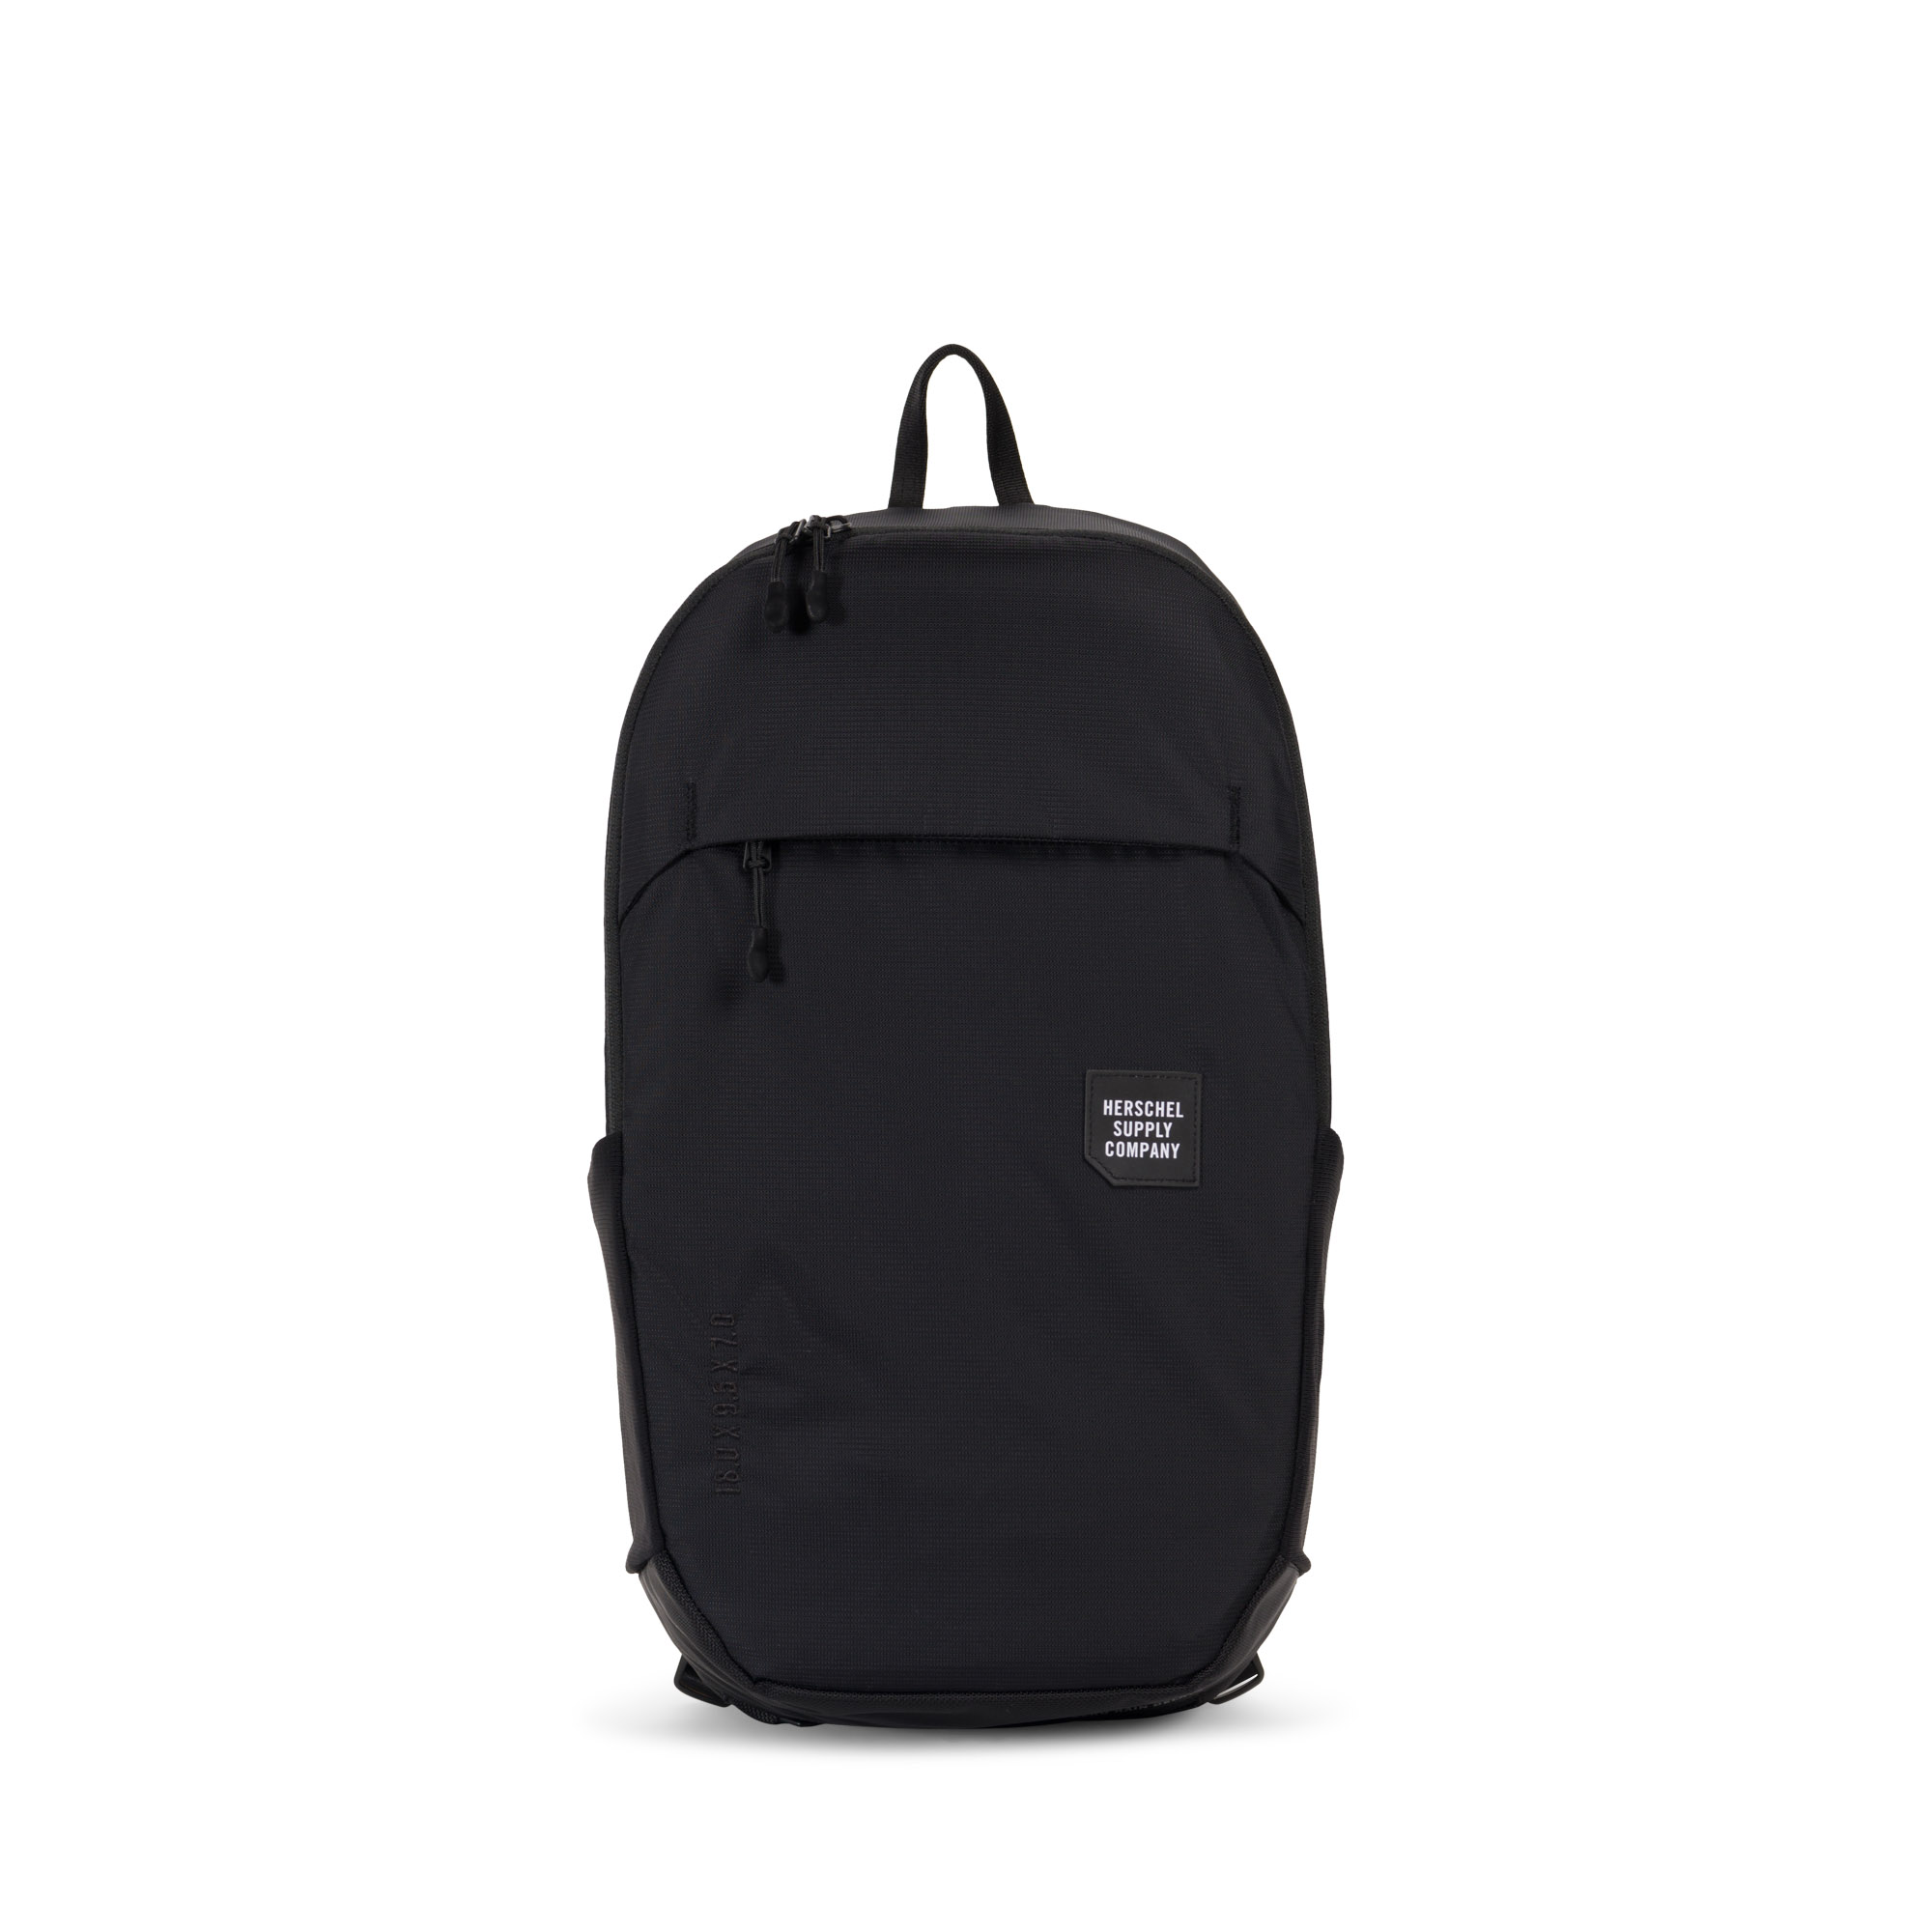 f683d44d7432 Mammoth Backpack Medium